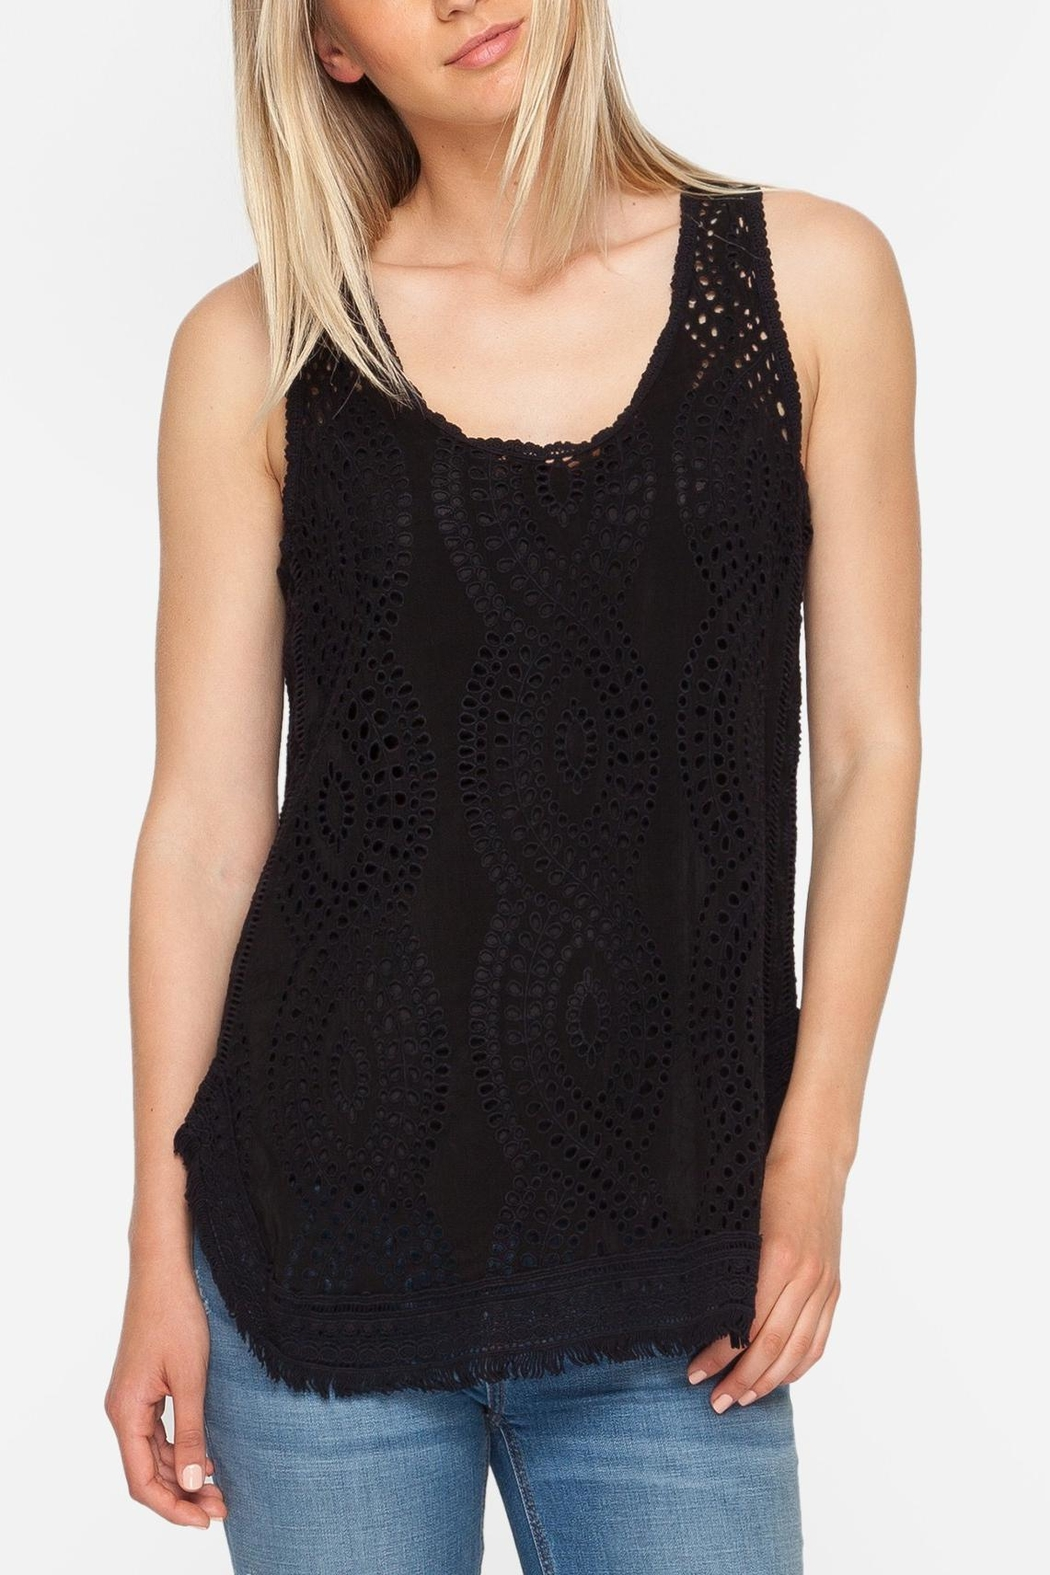 Johnny Was Eyelet Embroidered Tank - Front Cropped Image